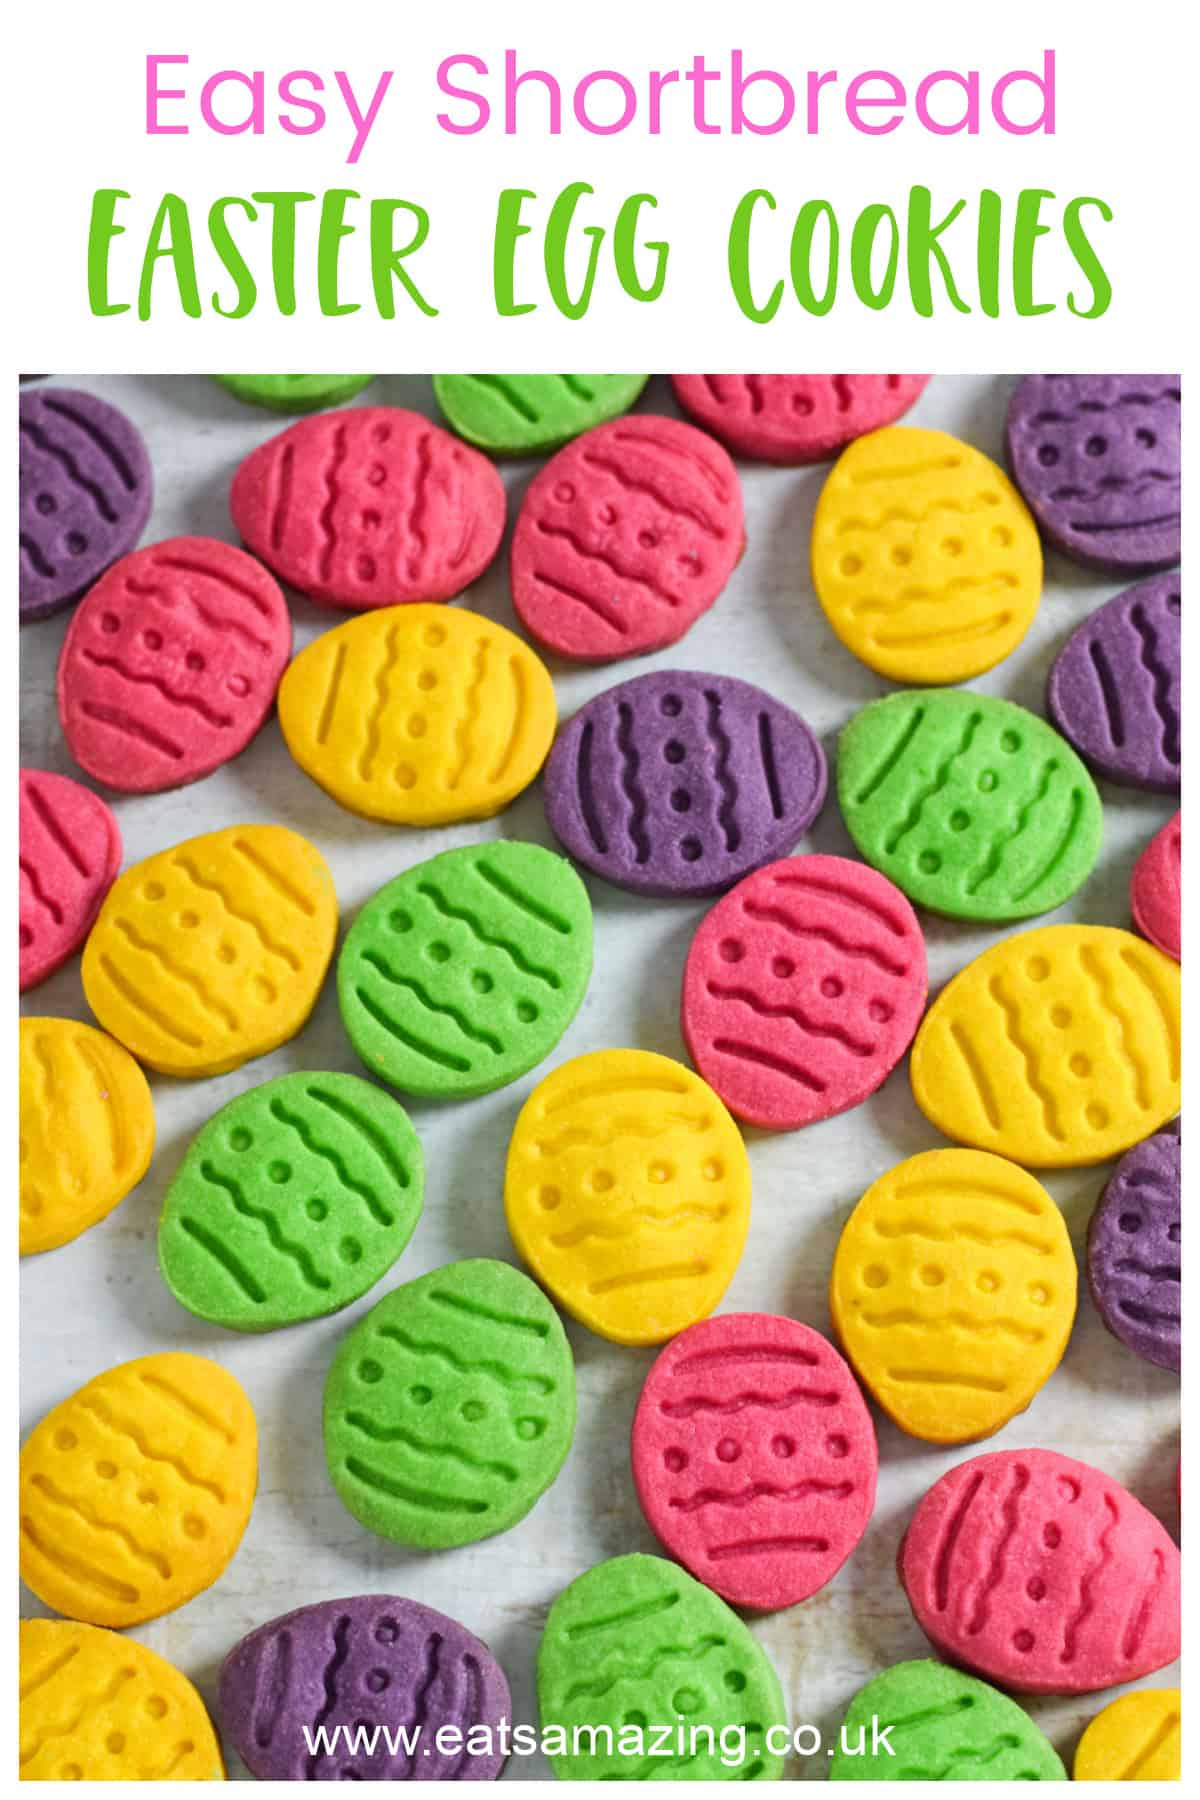 Cute and easy Easter egg cookies - fun Easter baking recipe for kids - perfect for Easter gifts